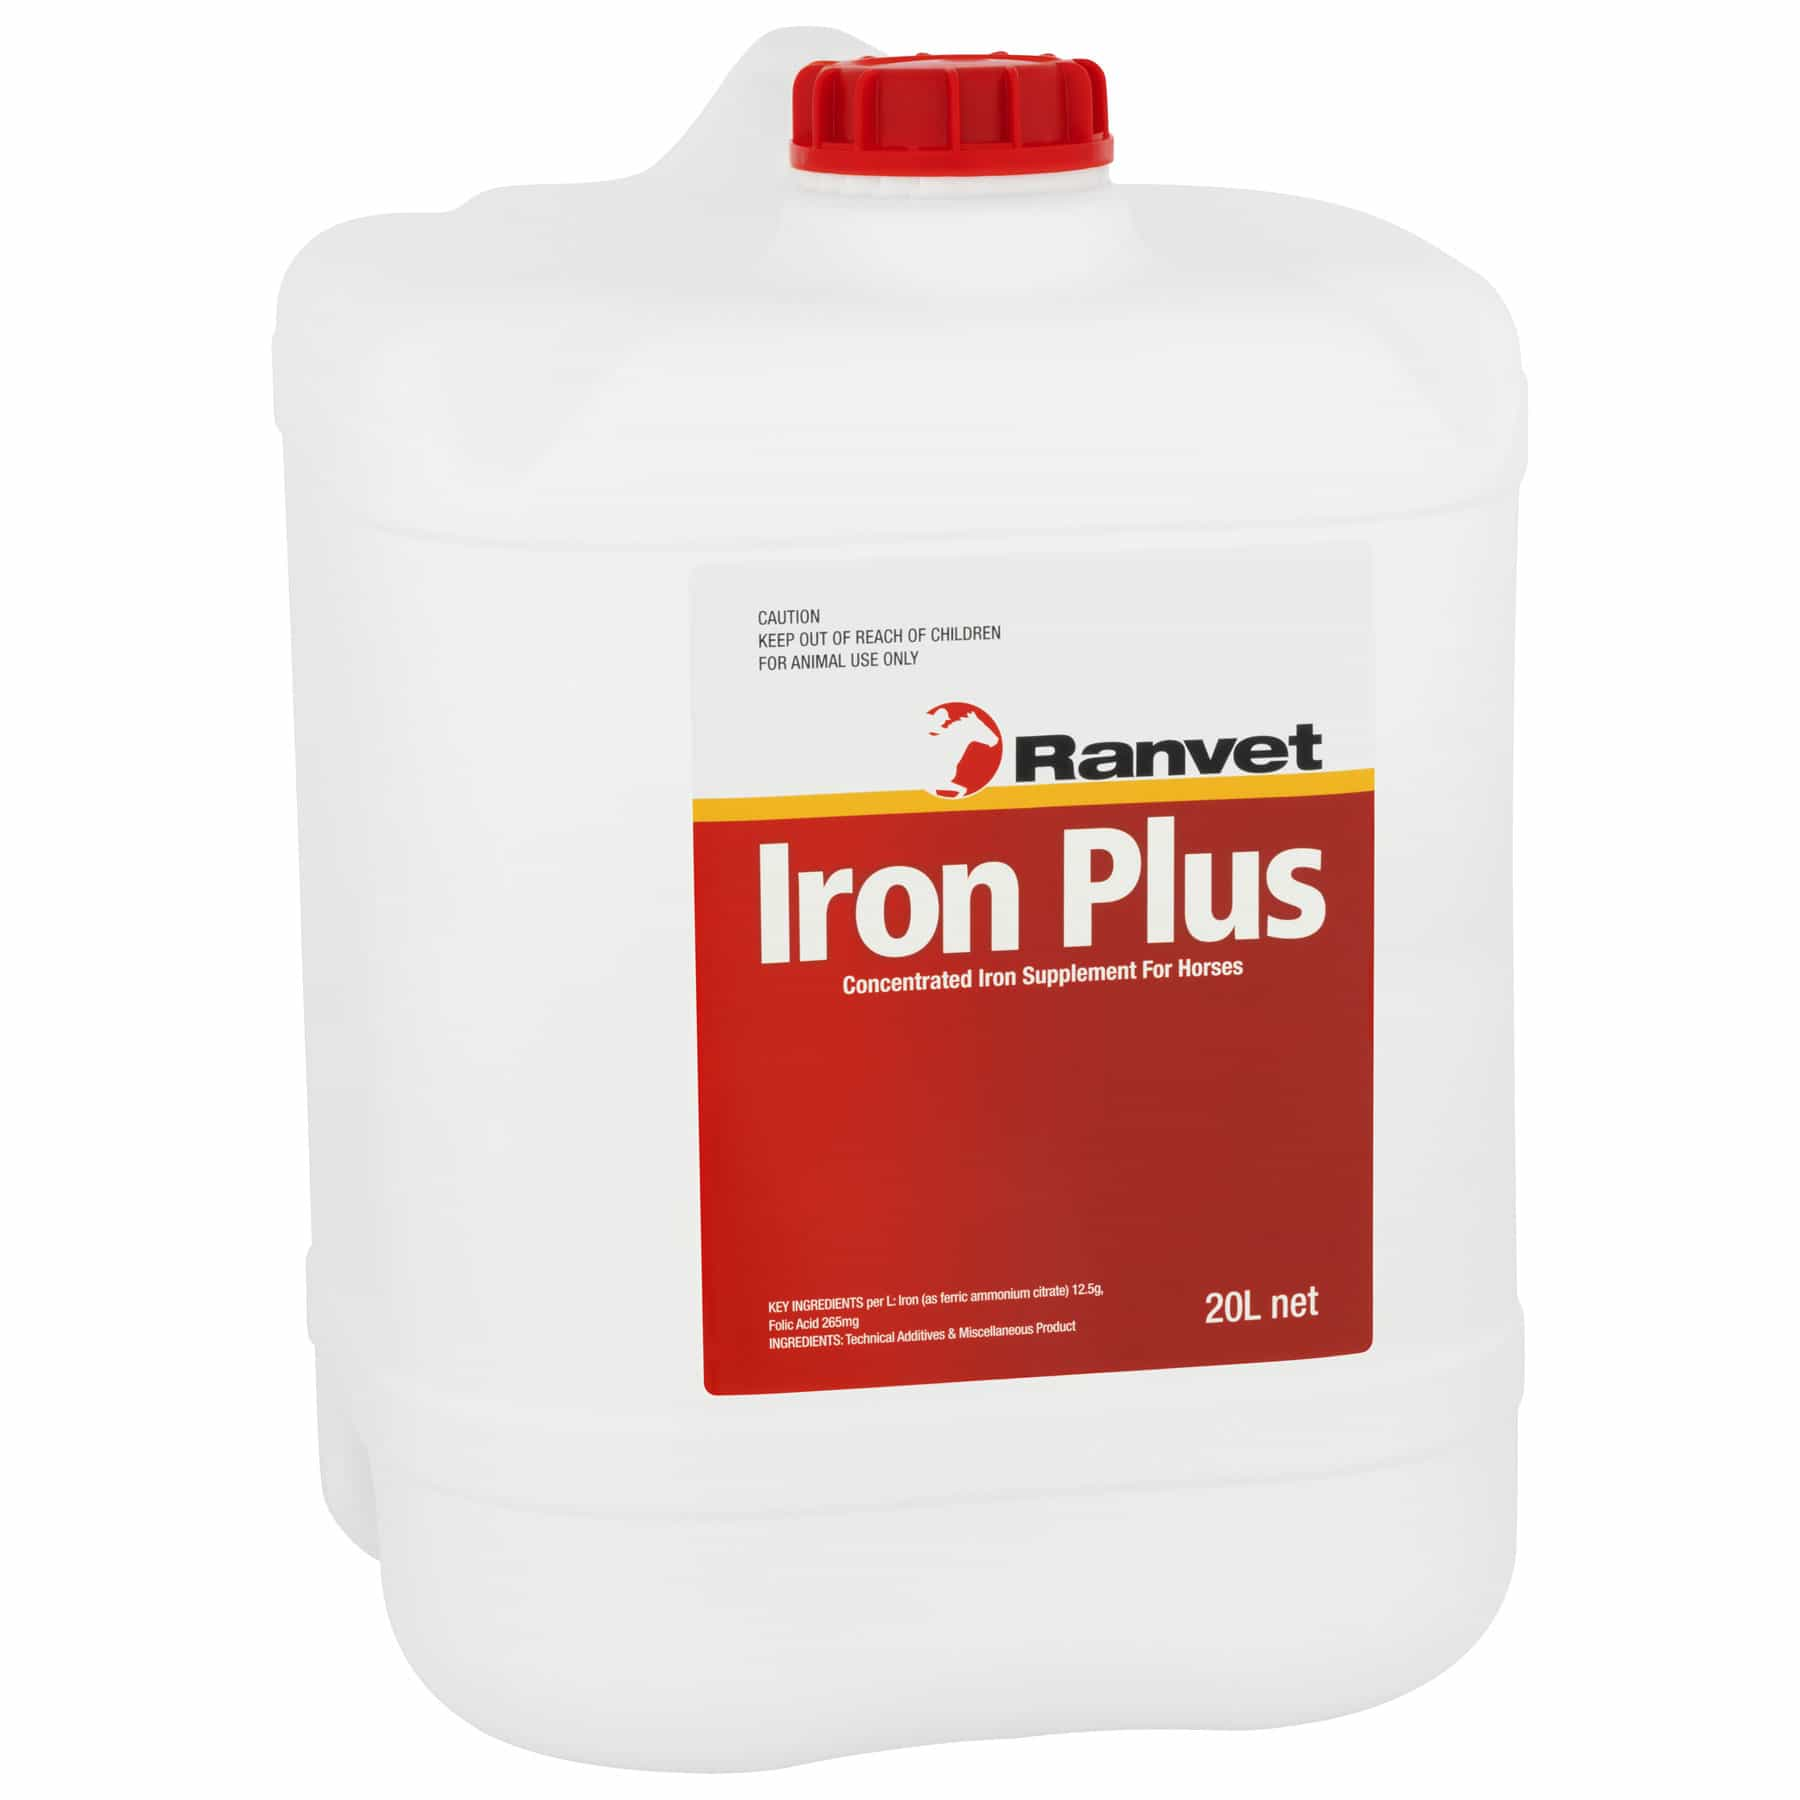 Iron Supplement for horses